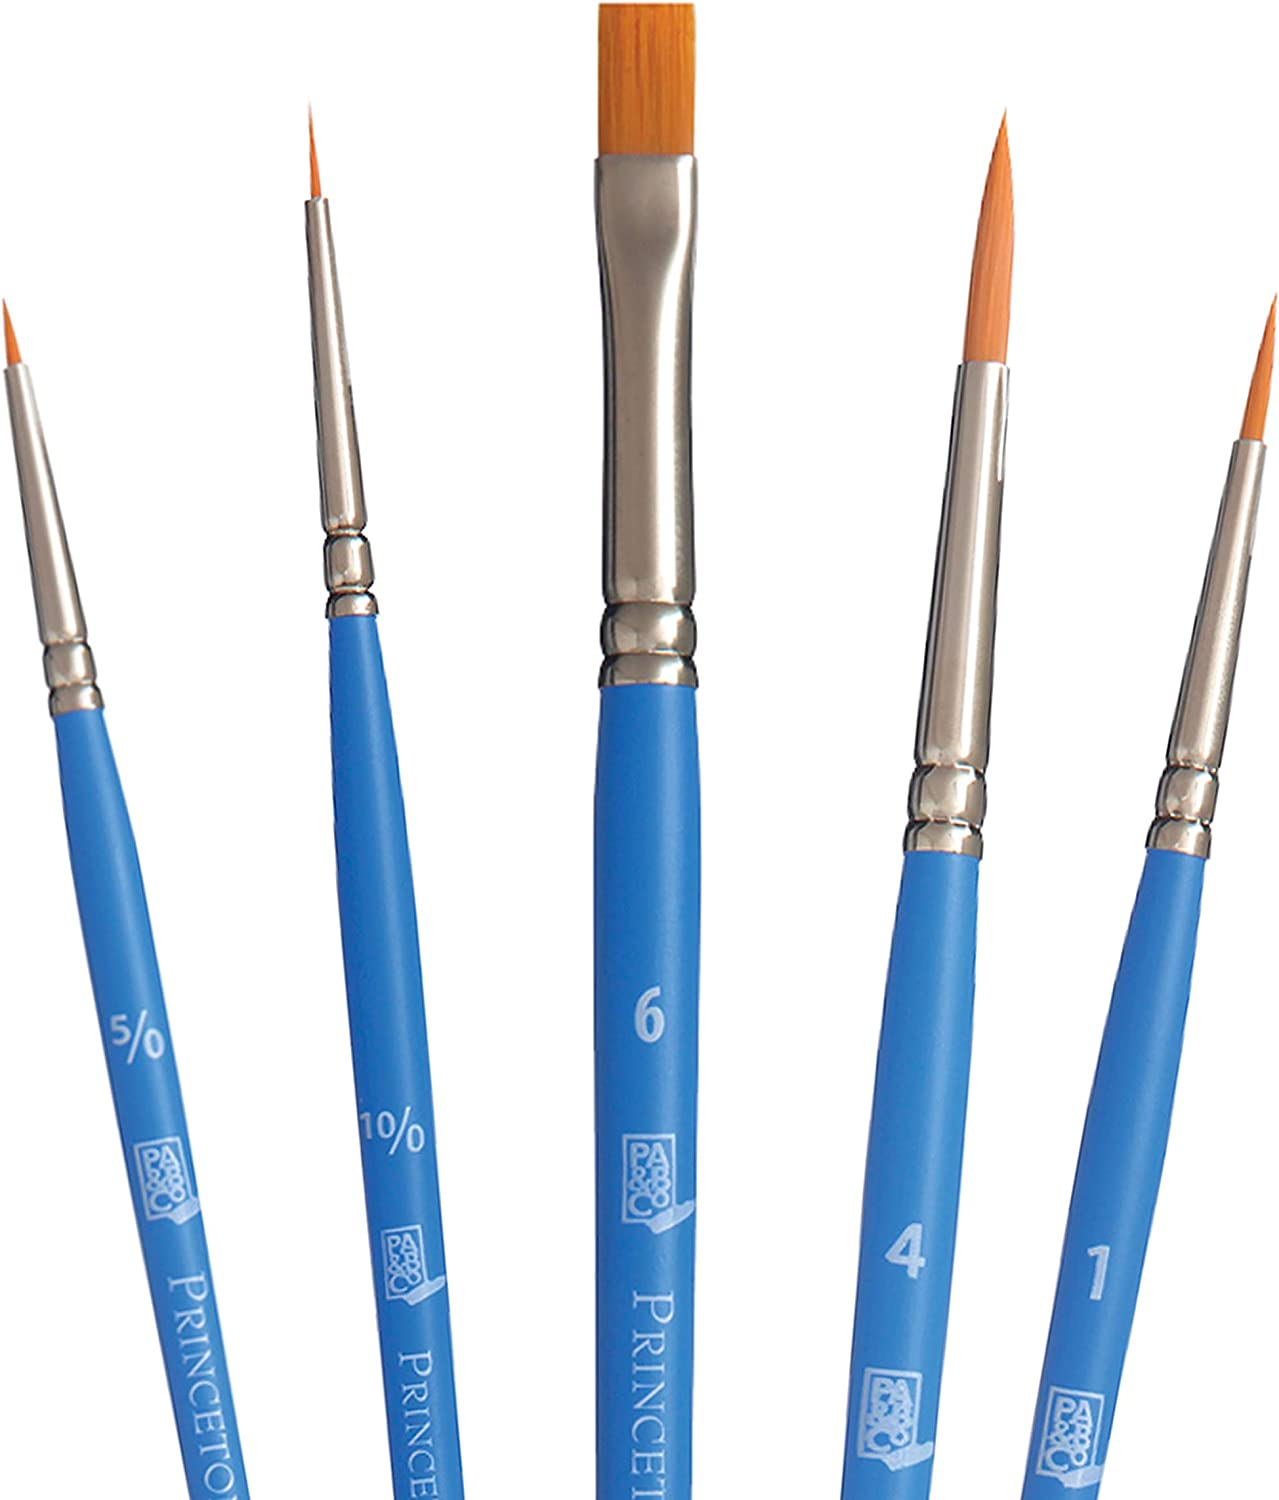 Princeton Select Artiste, Series 3750, Paint Brush for Acrylic, Watercolor and Oil, Set of 5